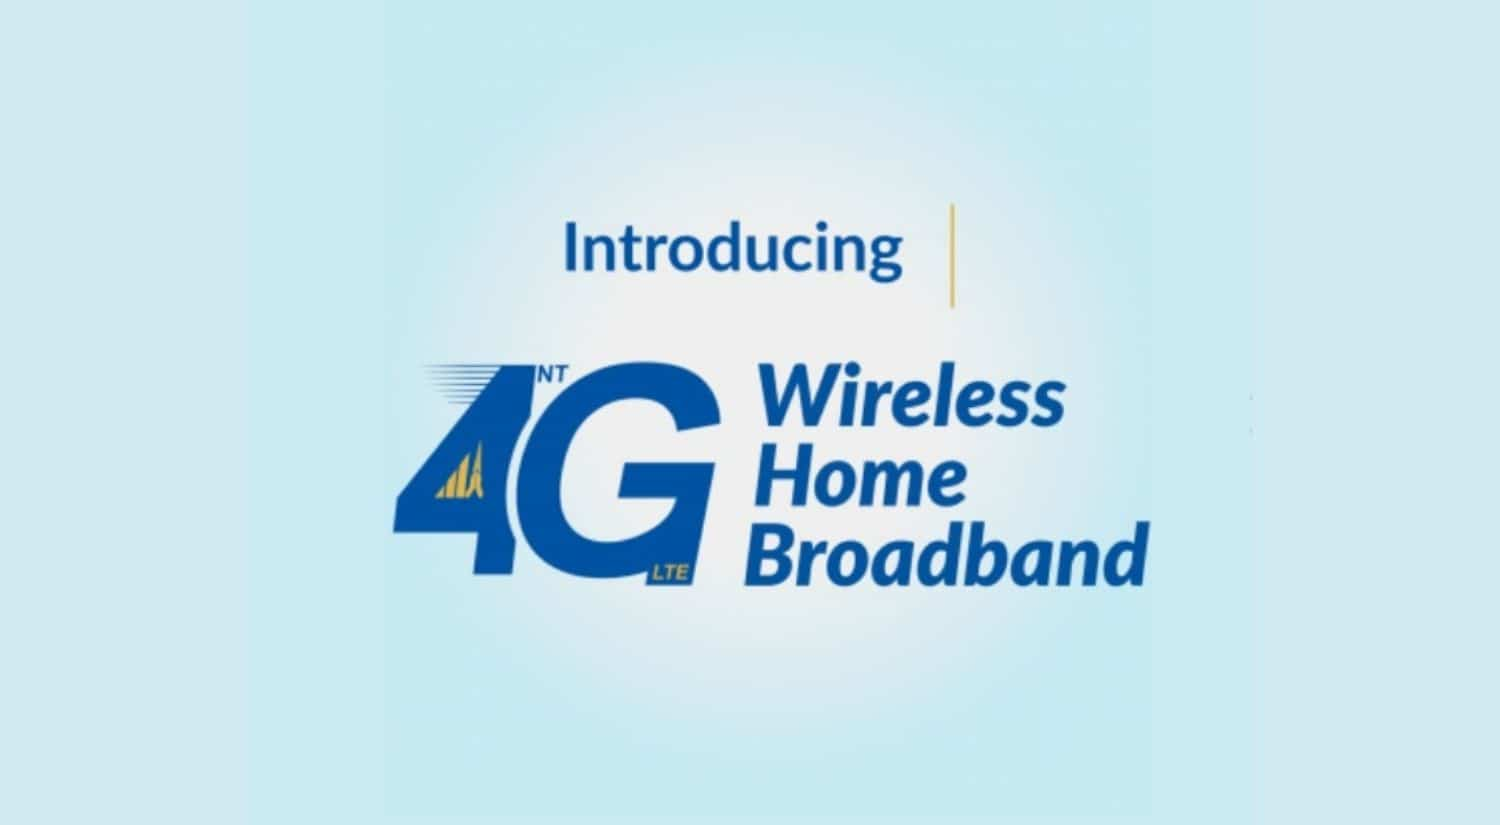 Nepal Telecom 4G wireless home broadband